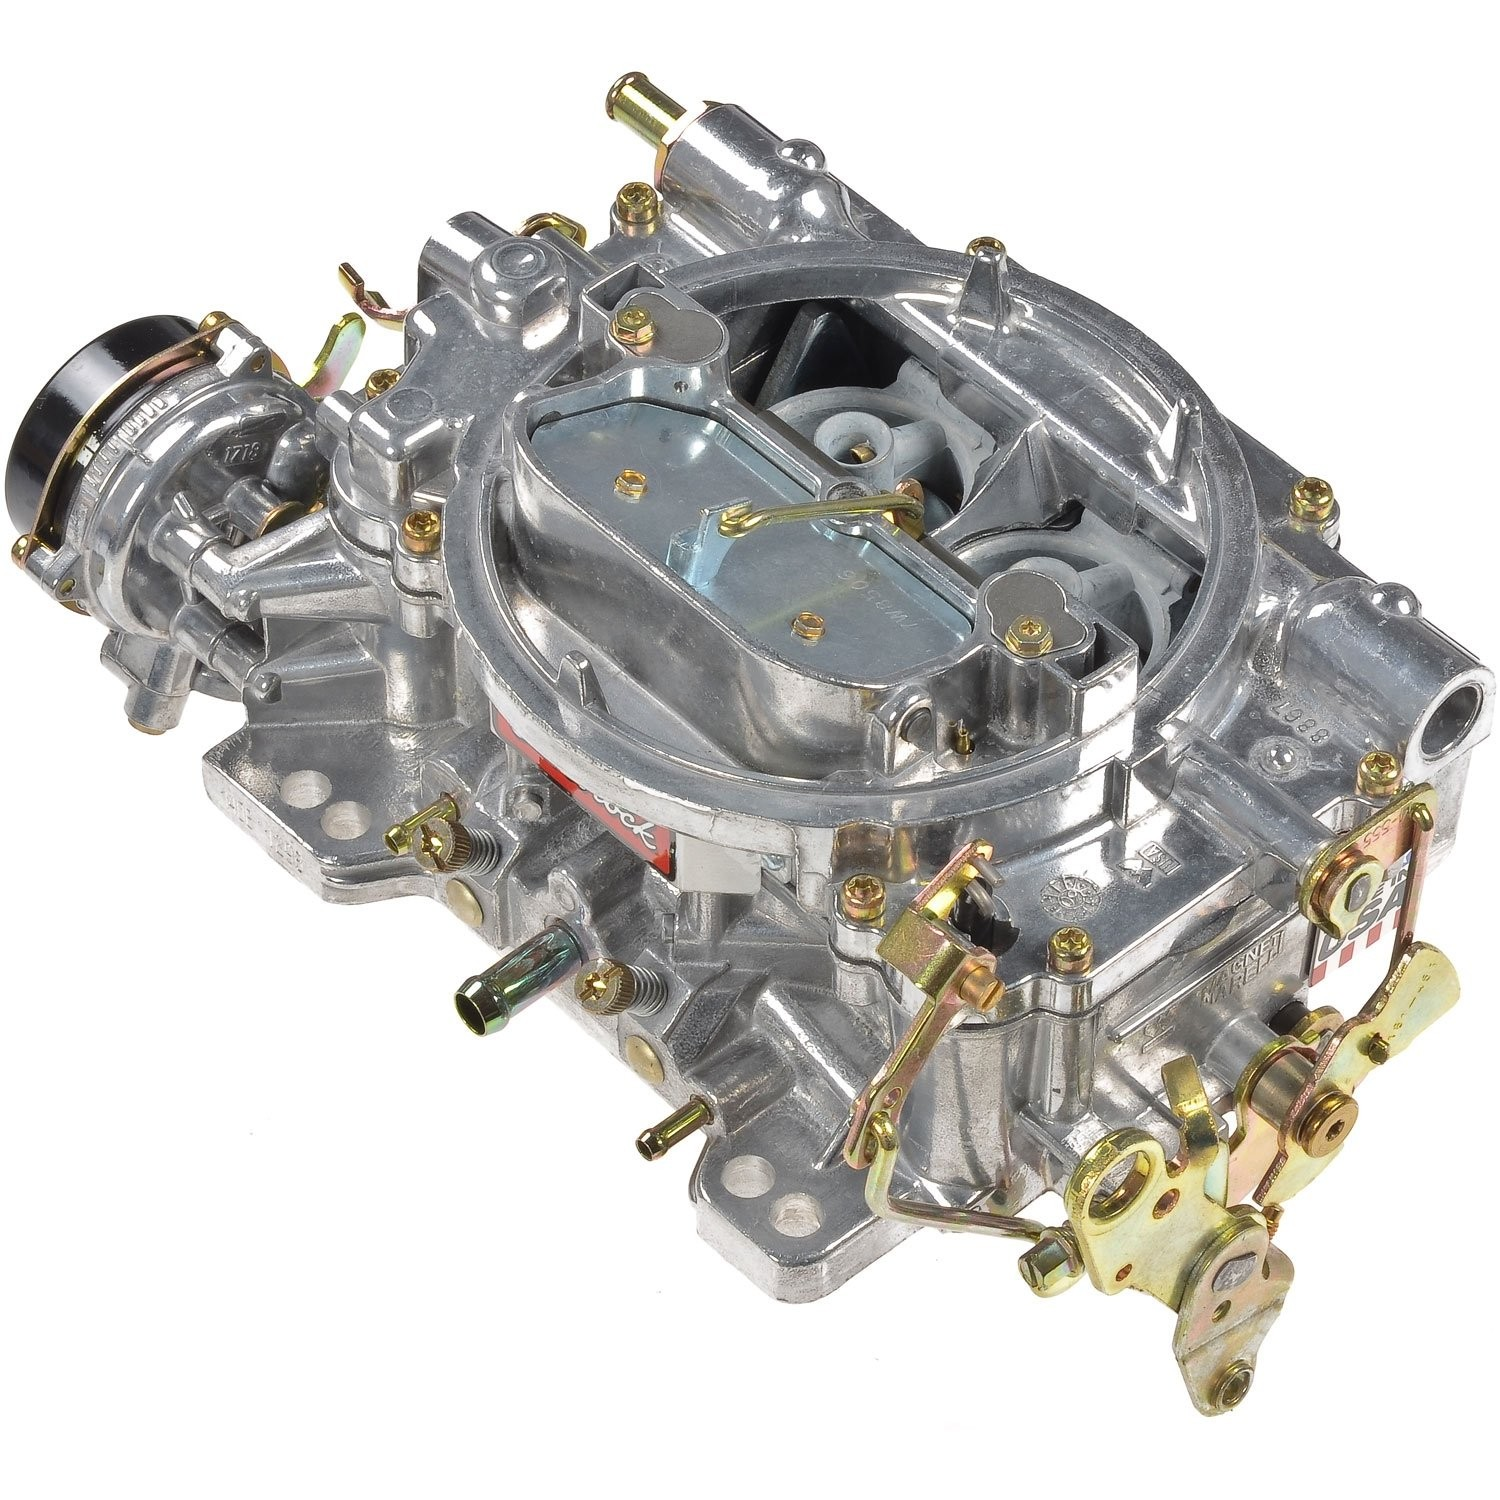 Holly Electric Choke Wire Diagram Edelbrock Performer Series 600 Cfm Carburetor with Electric Choke Of Holly Electric Choke Wire Diagram